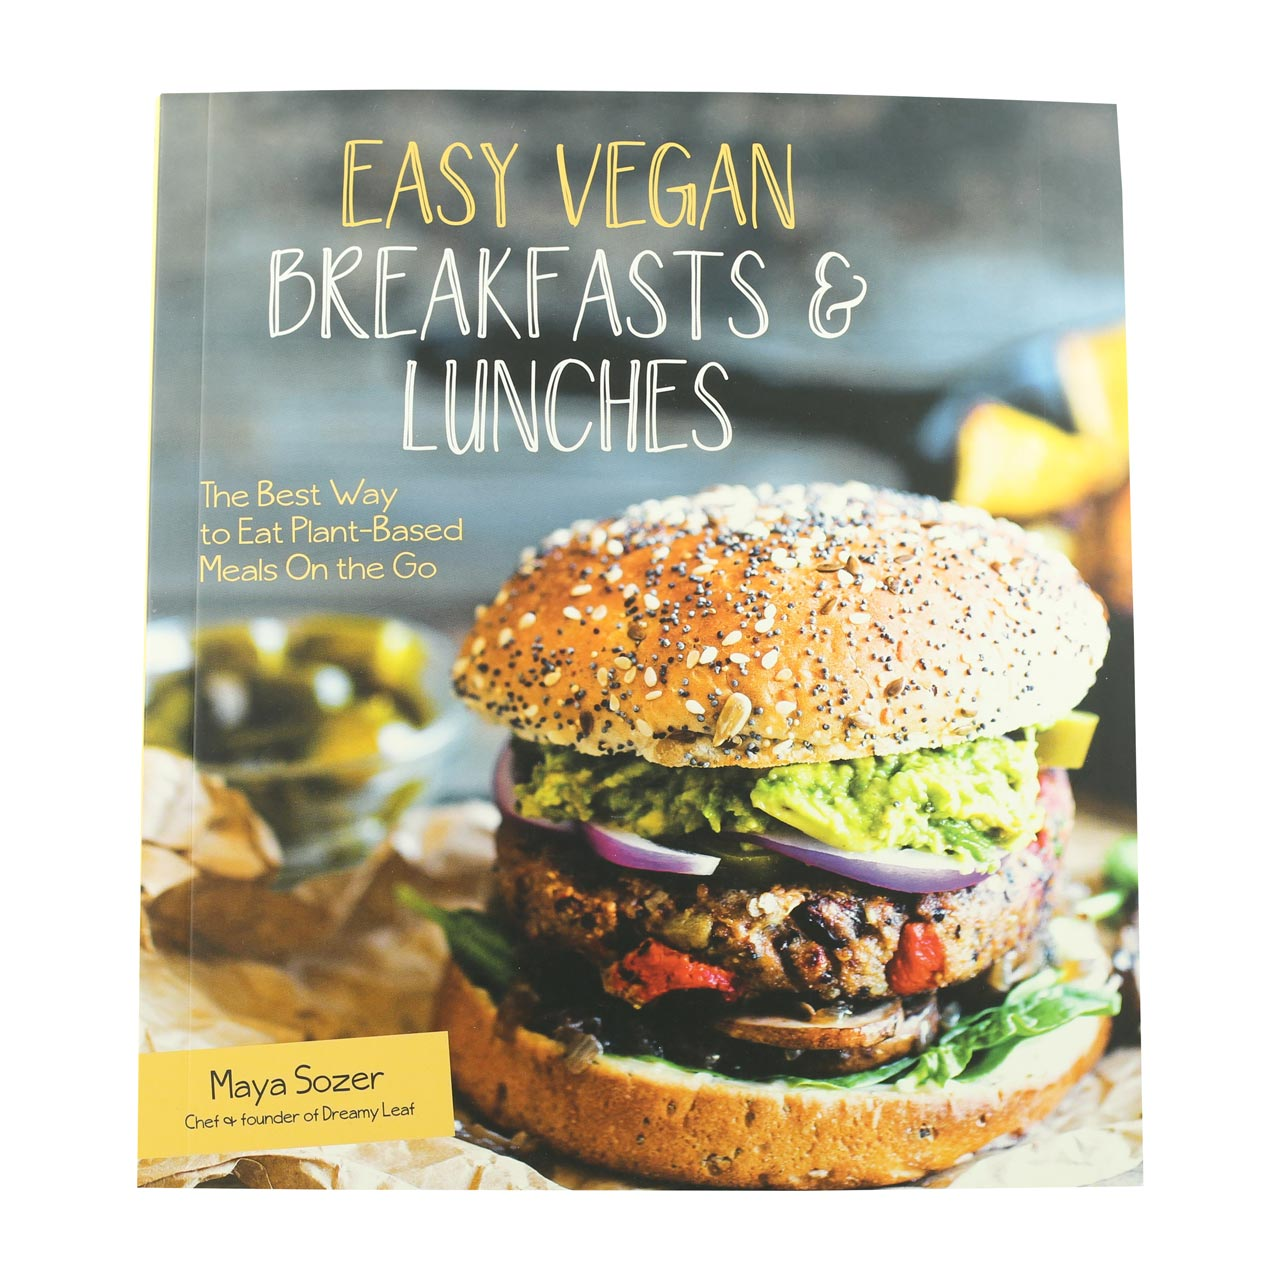 Easy Vegan Breakfast and Lunches